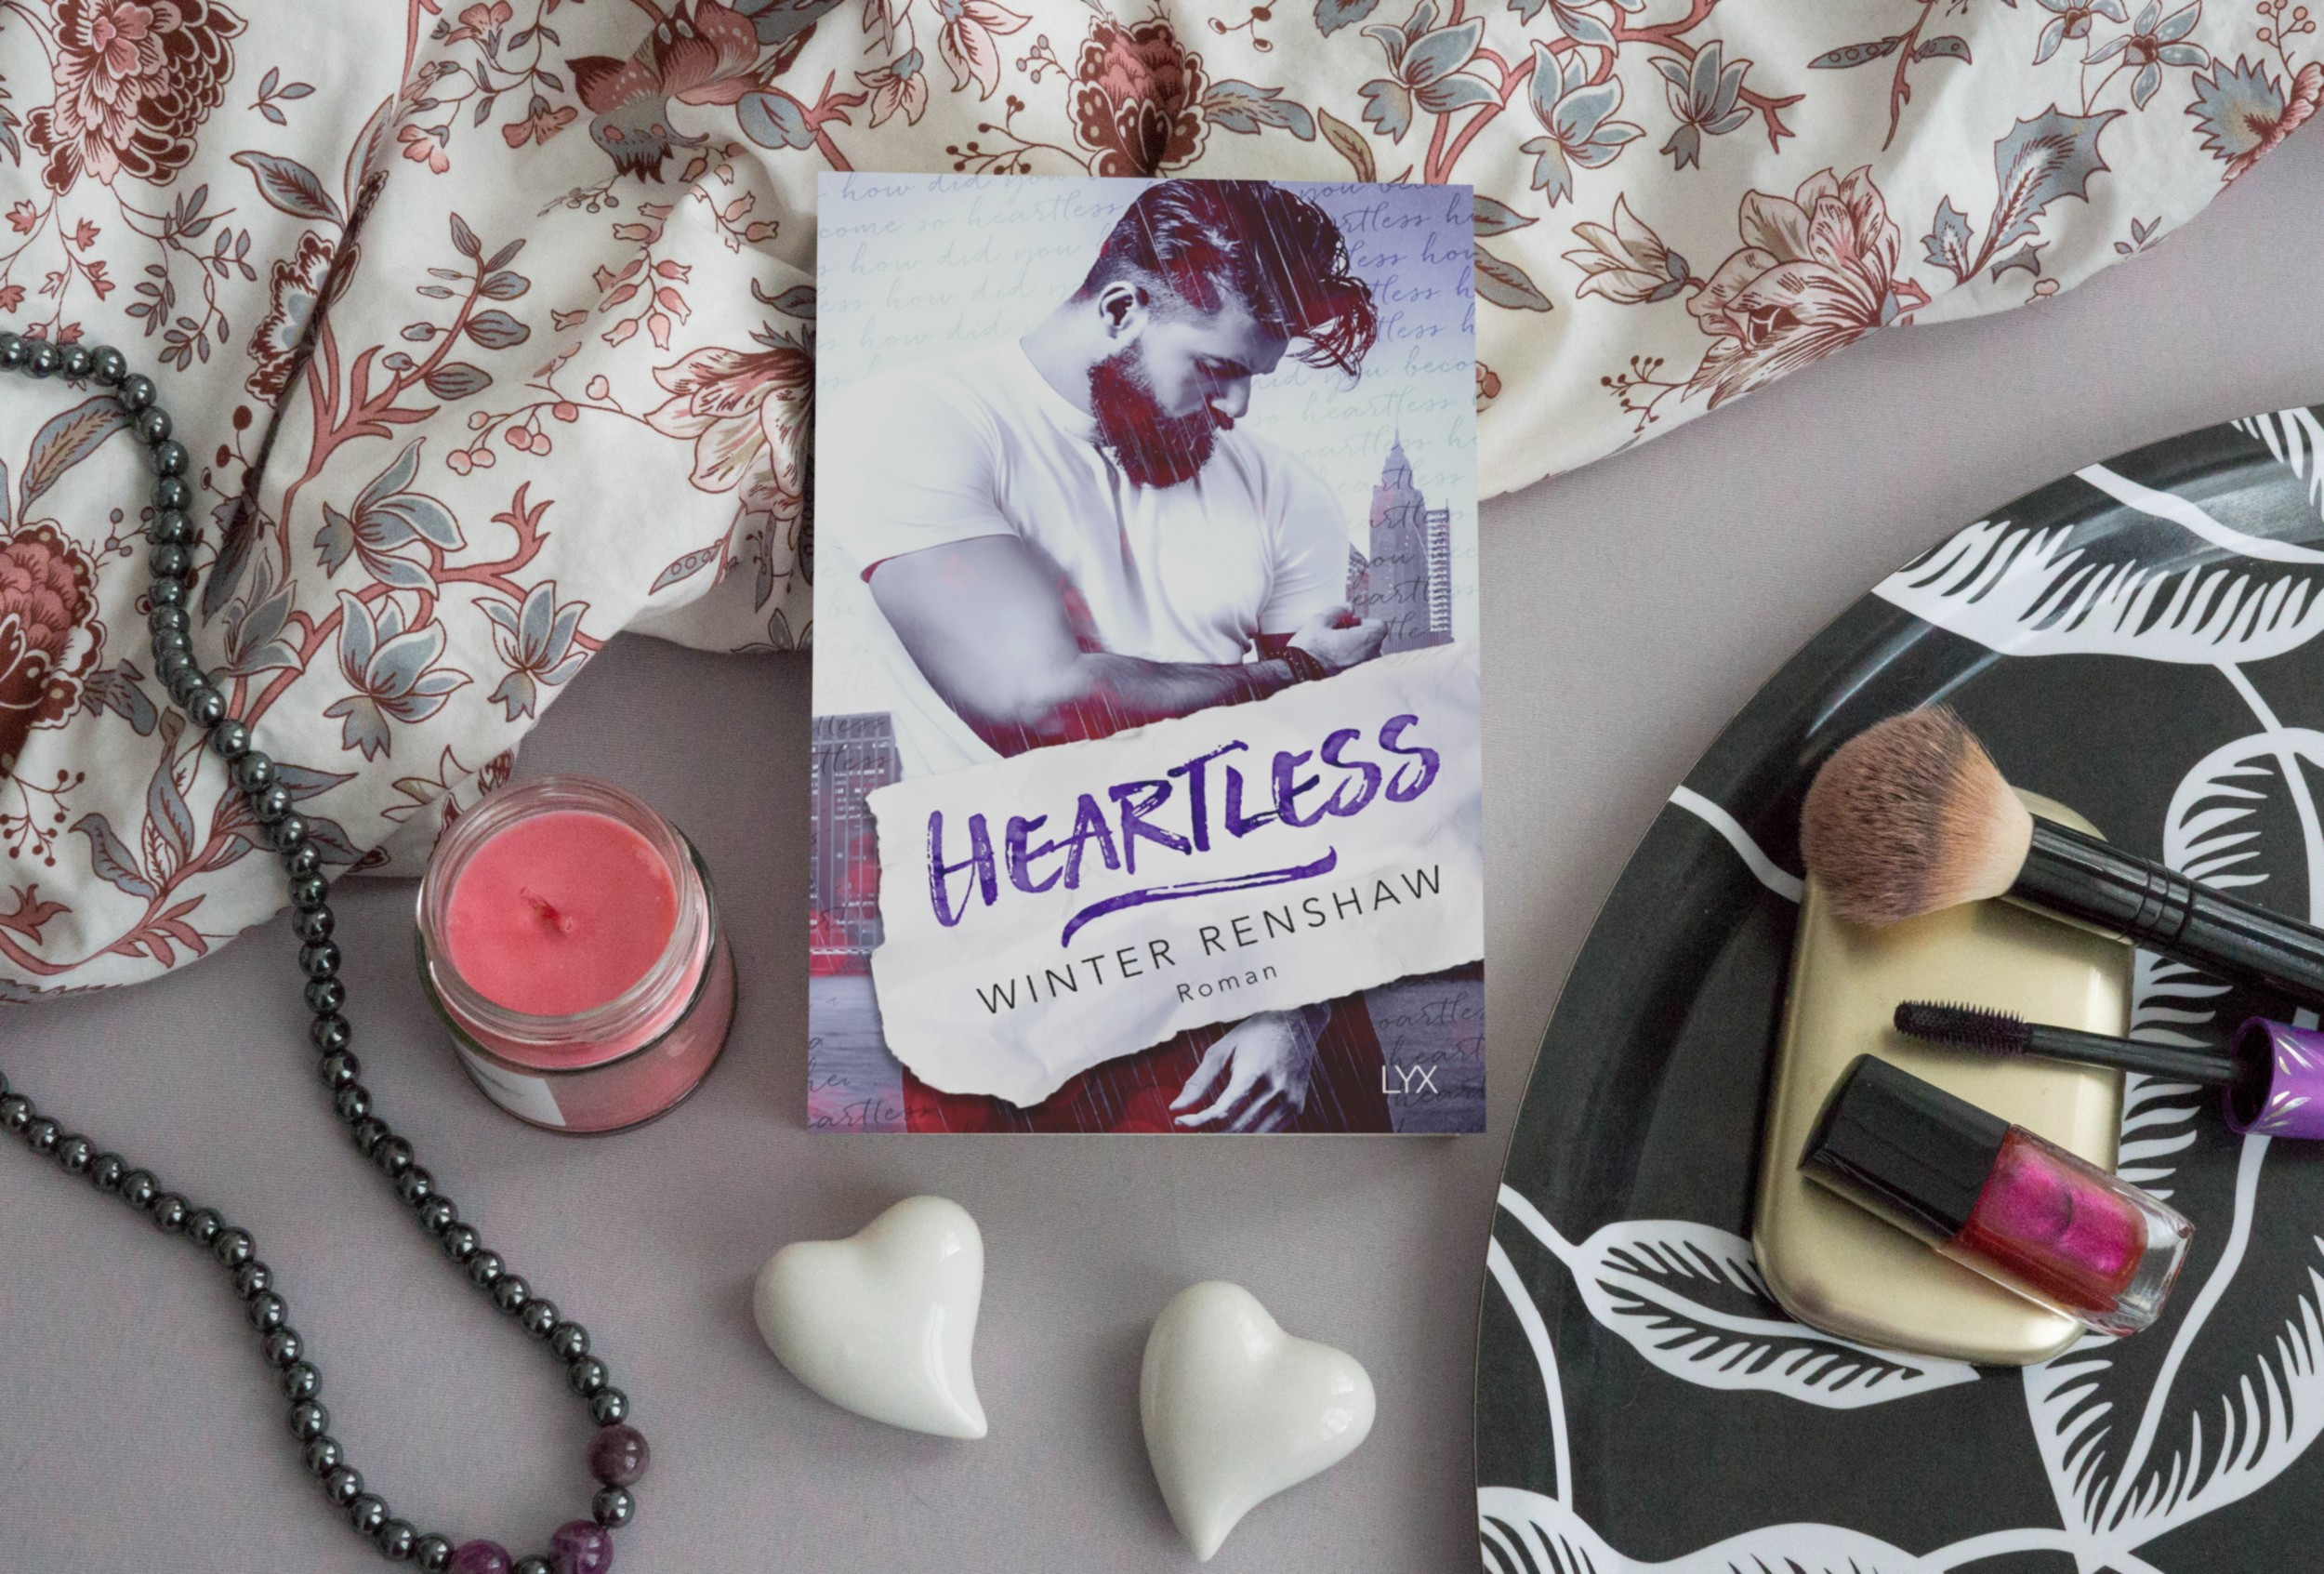 Heartless: Amato Brothers 1 – Winter Renshaw graphic